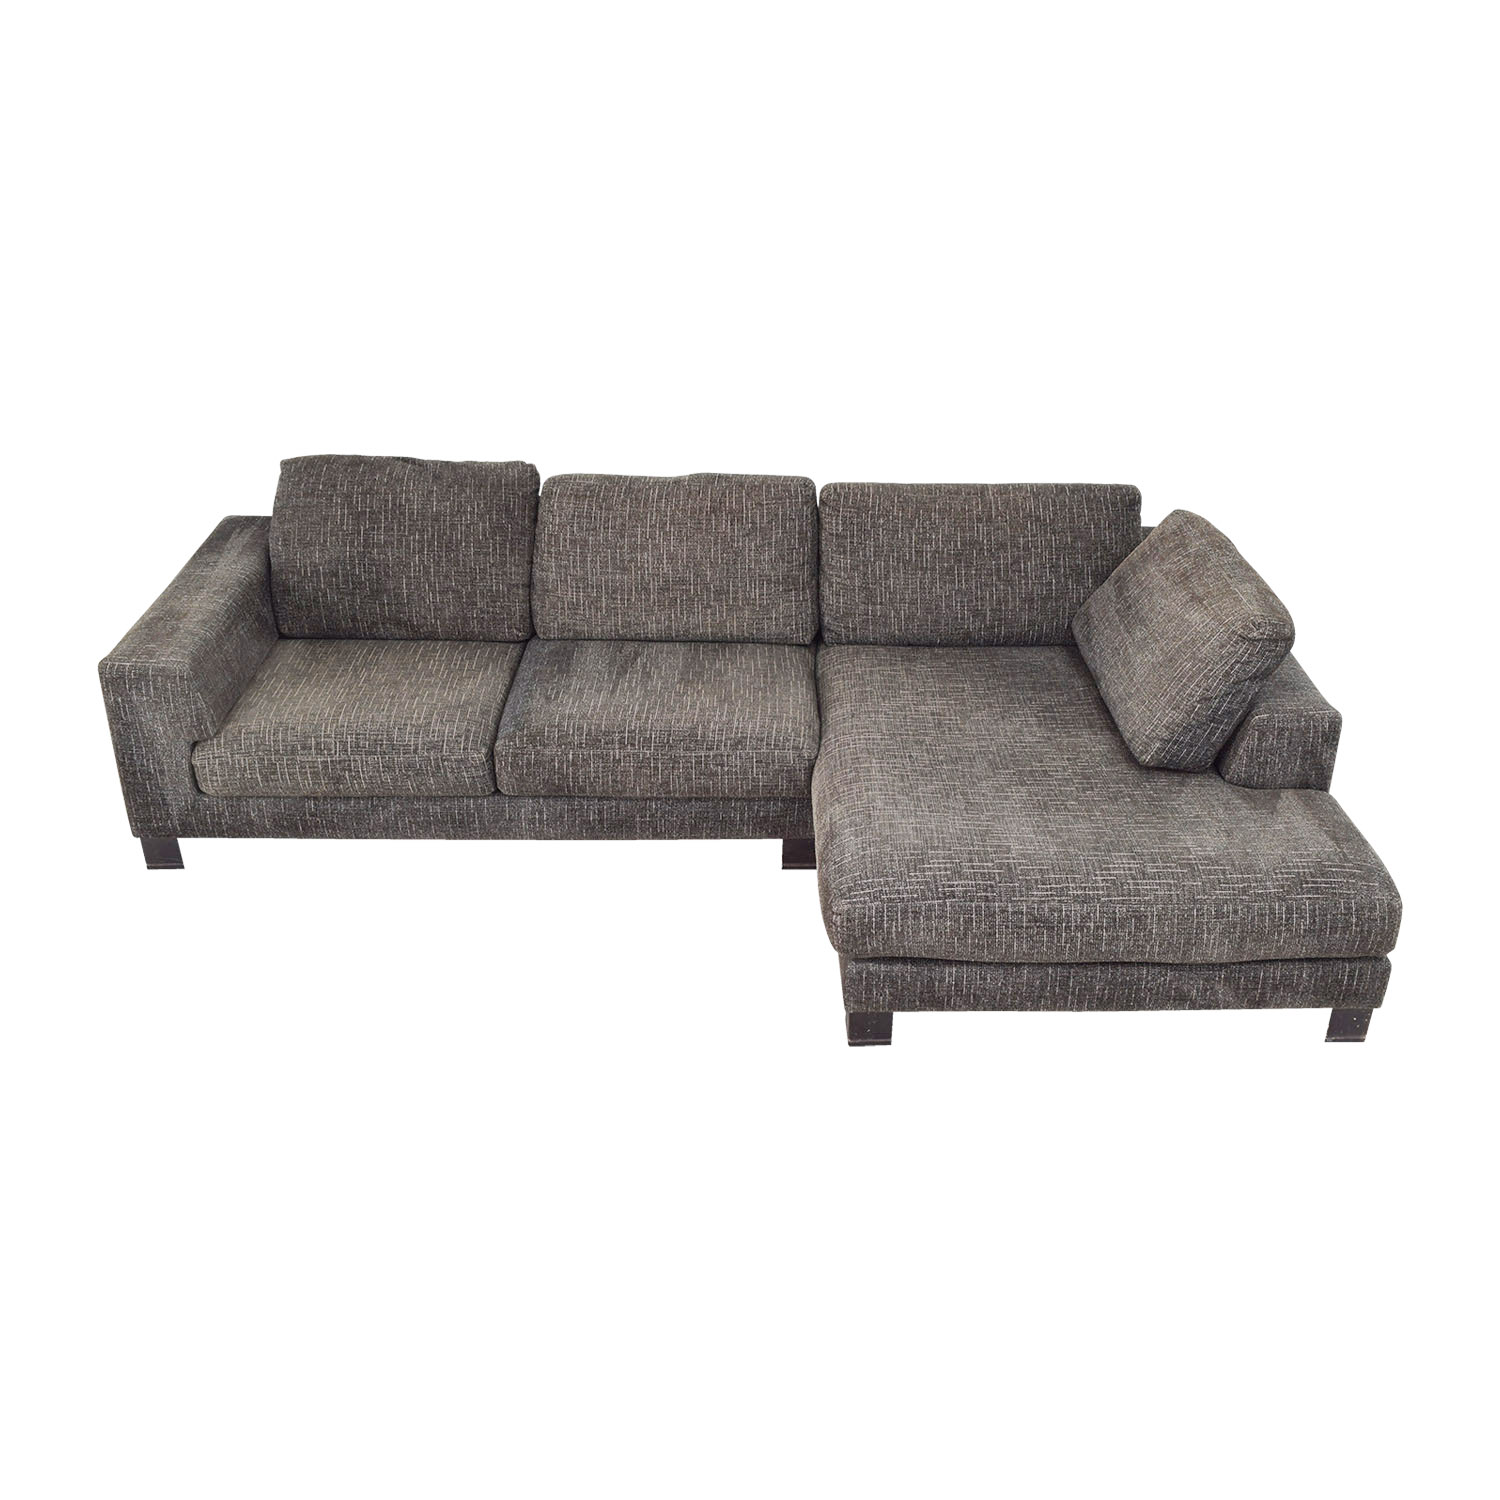 74 Off Grey Tweed Right Arm Chaise Sectional Sofas